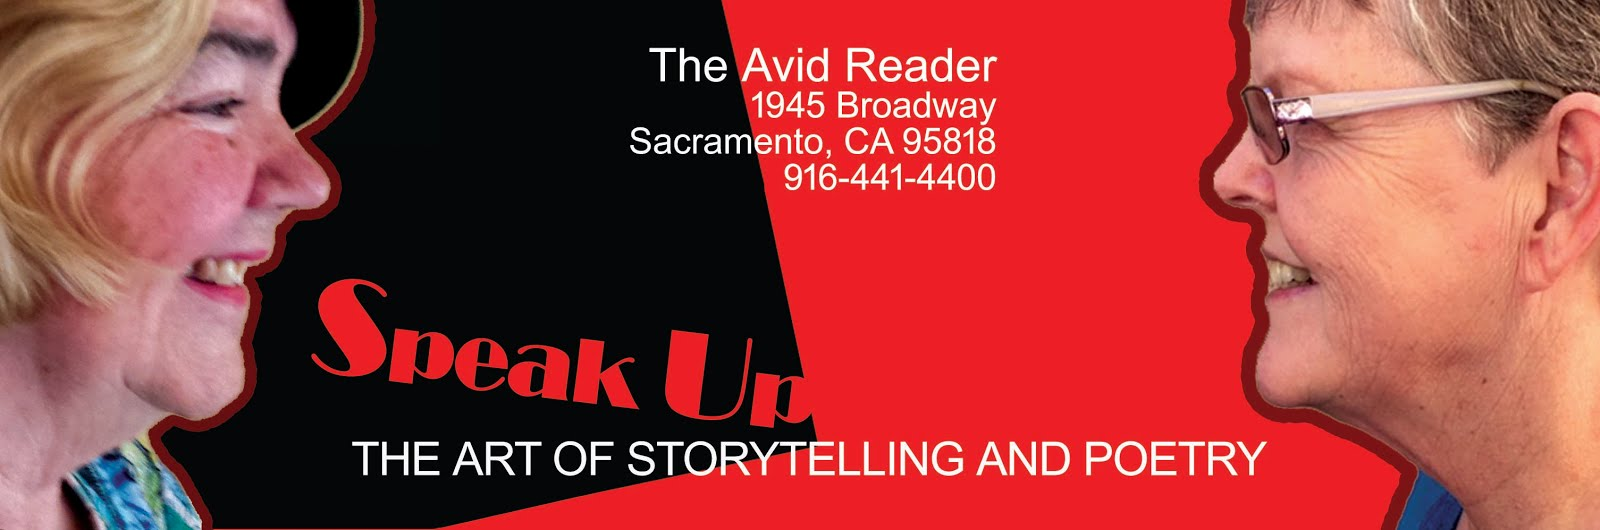 SPEAK UP STORYTELLING/POETRY in Sac. Fri. (1/26)